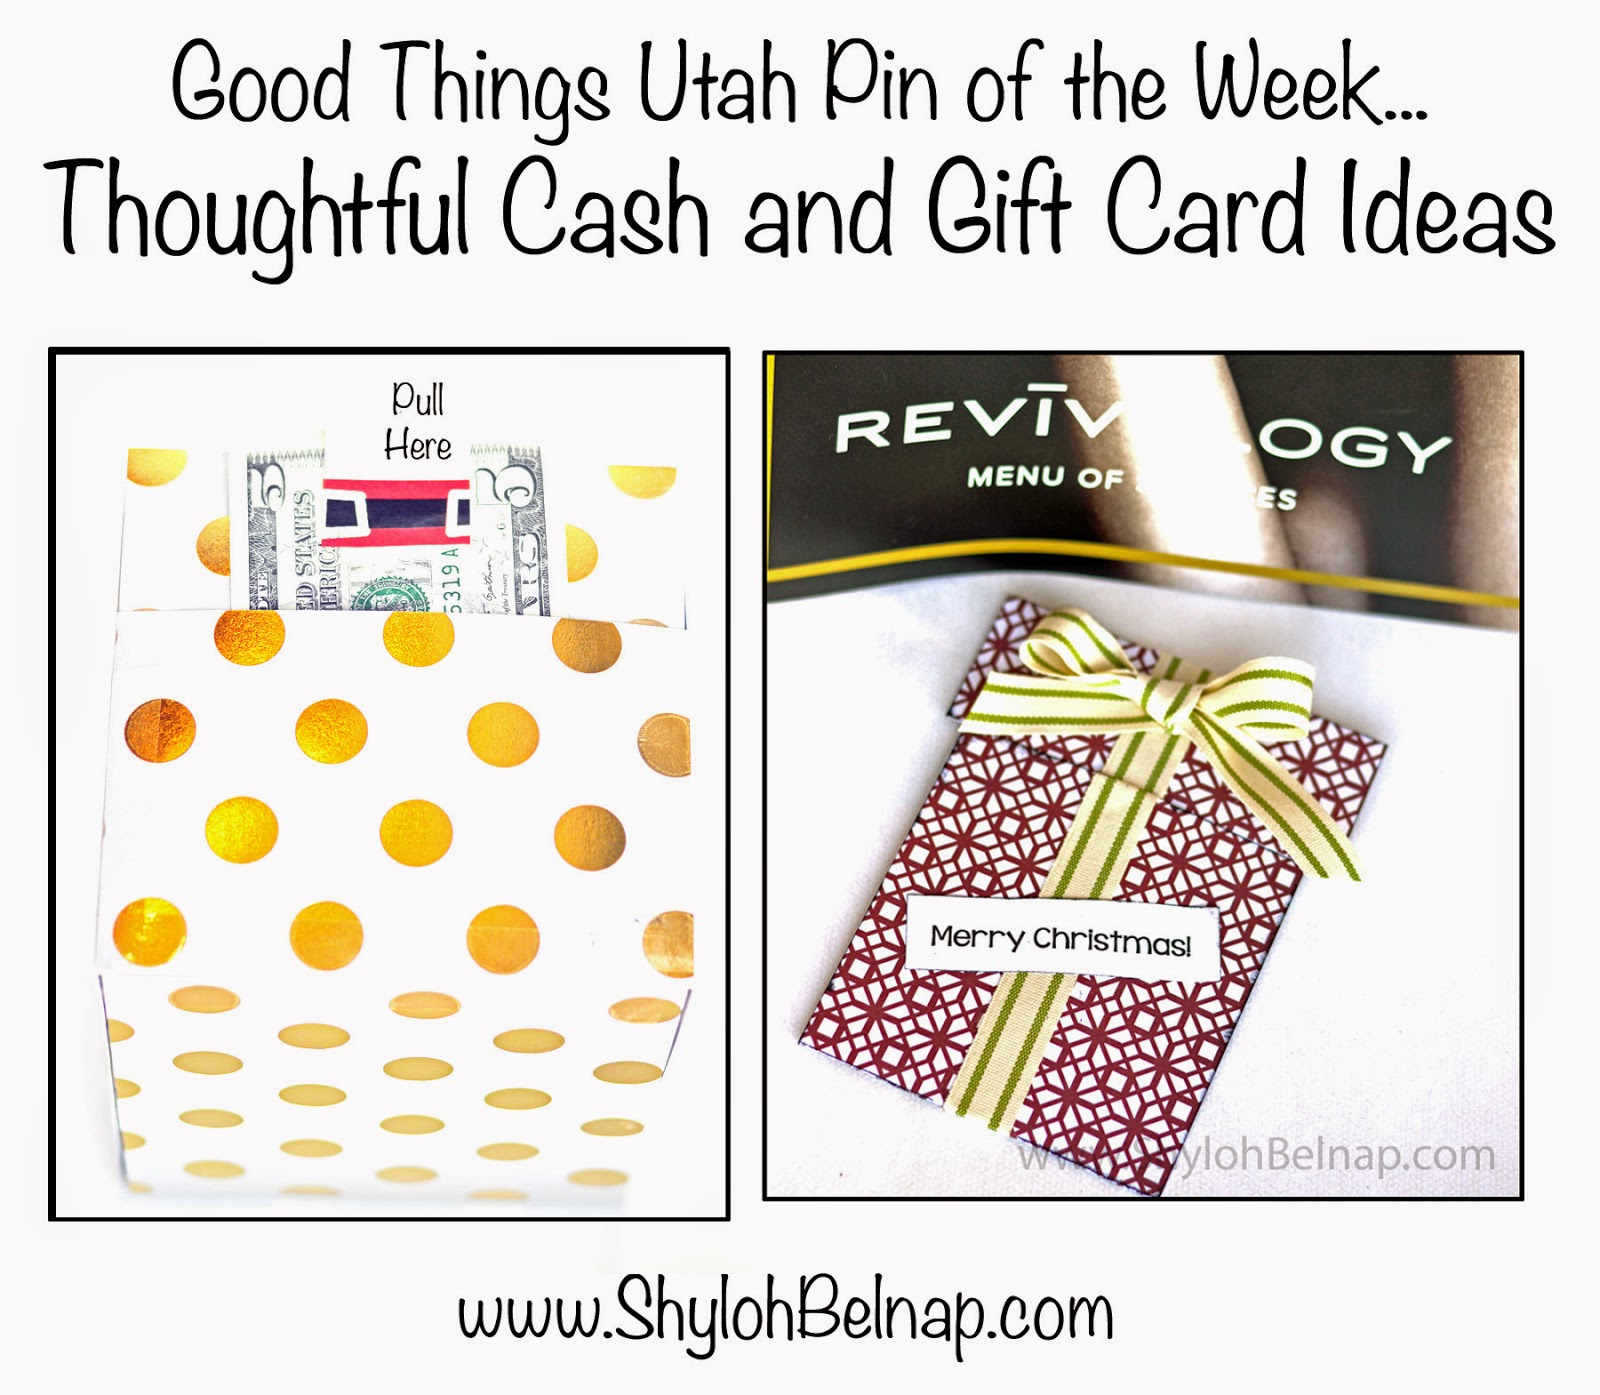 Shyloh Belnap: Thoughtful Cash and Gift Card Ideas